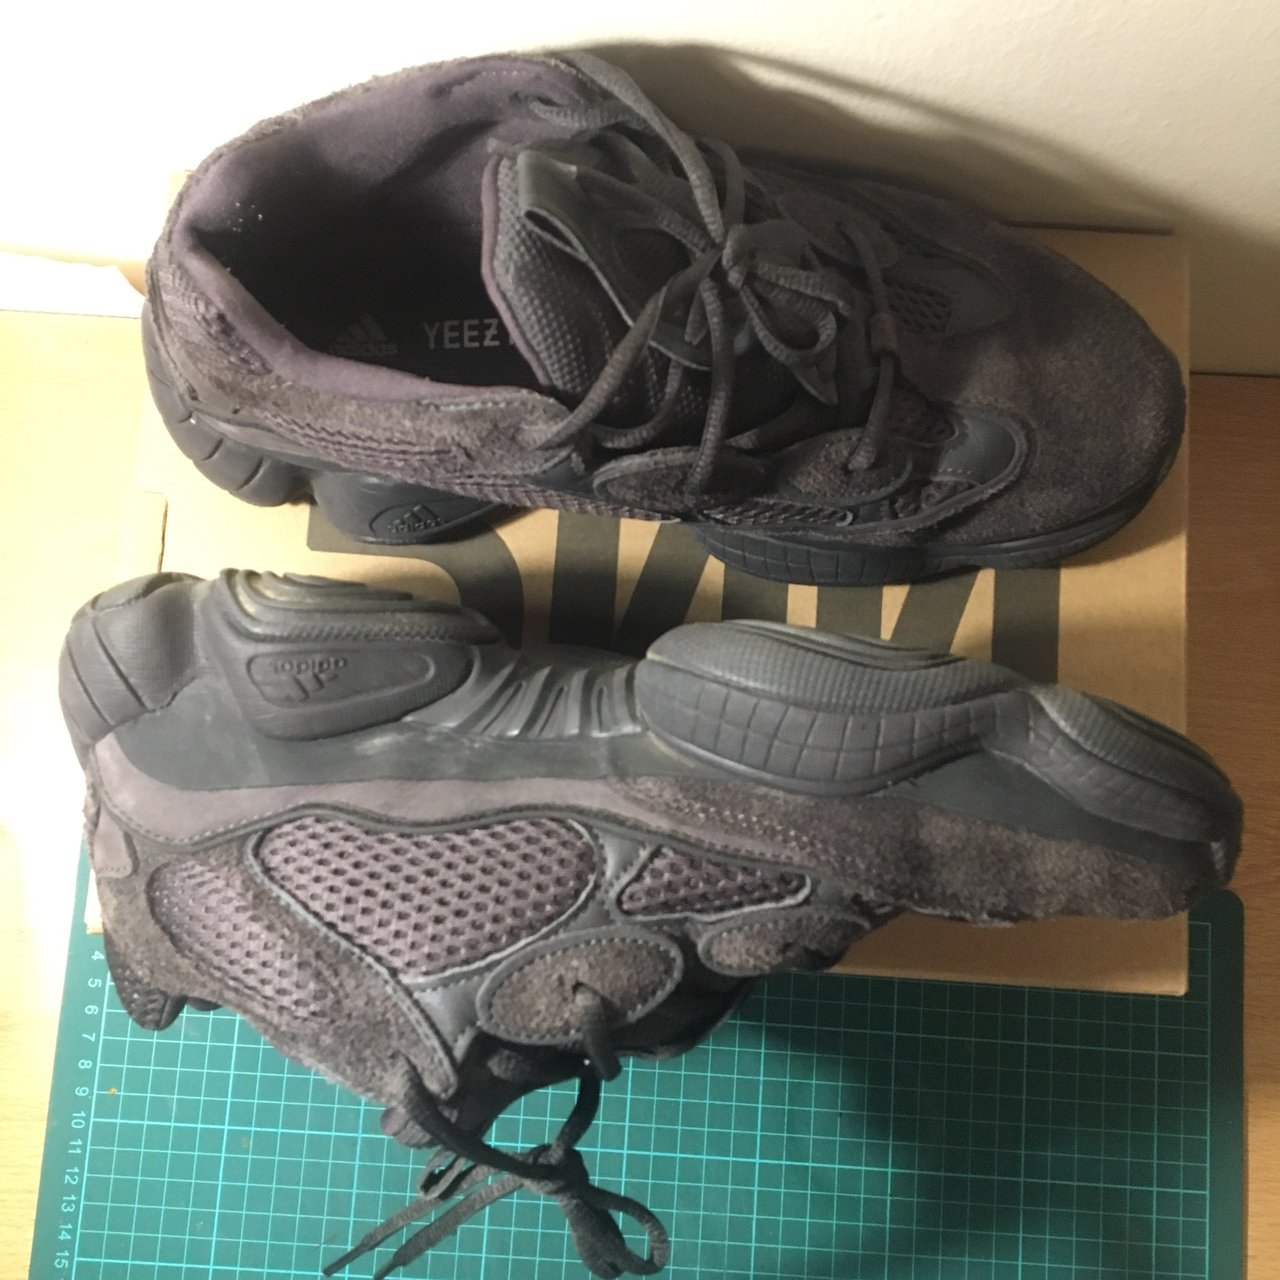 fdbd31a03582b Adidas yeezy 500 utility black UK 8.5 Looking for with for - Depop